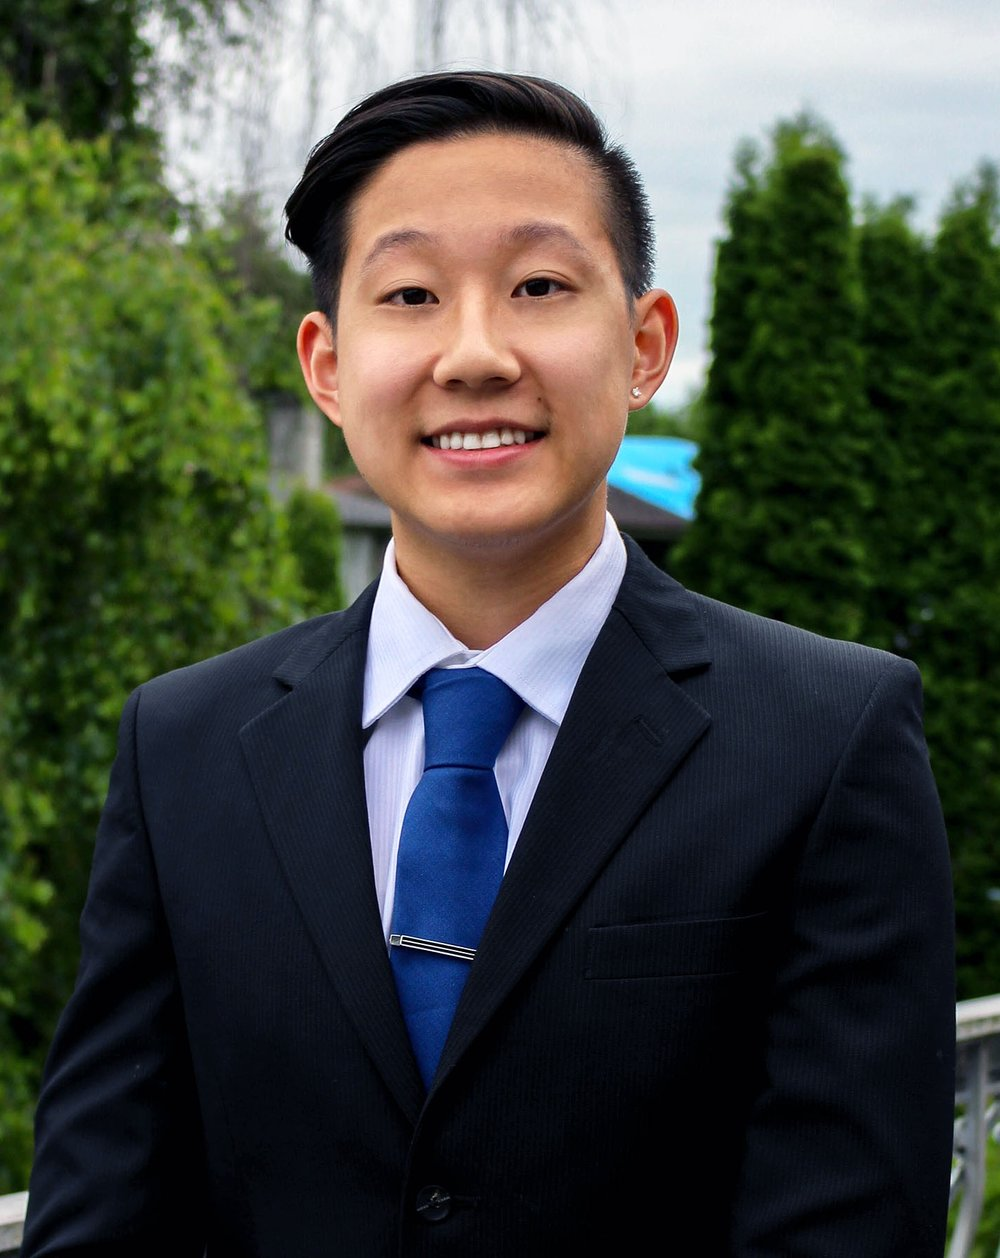 George Li Position: Corporate Relations Coordinator Year: 2 Concentration: MIS and Finance One Emoji that describes you and why: 🐵 describes me because I'm always curious What are you excited to do you in your term? I'm excited to have more practice talking to industry professionals/networking and to be more involved in BASS events.